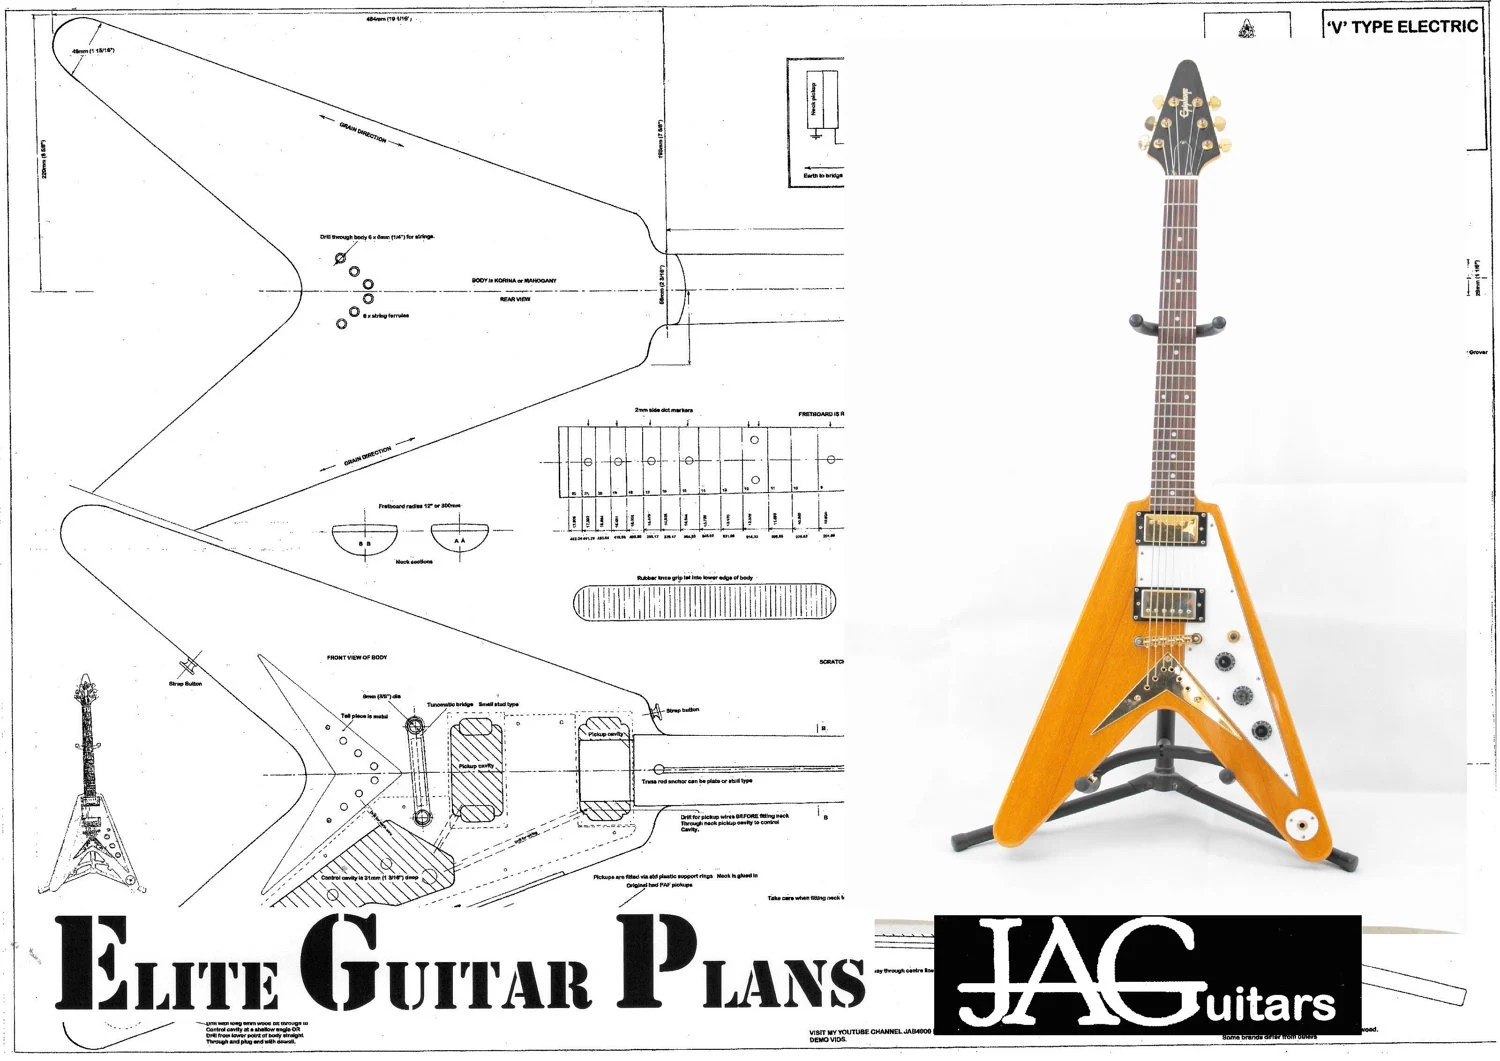 Plans to build this 58 Flying V type guitar by